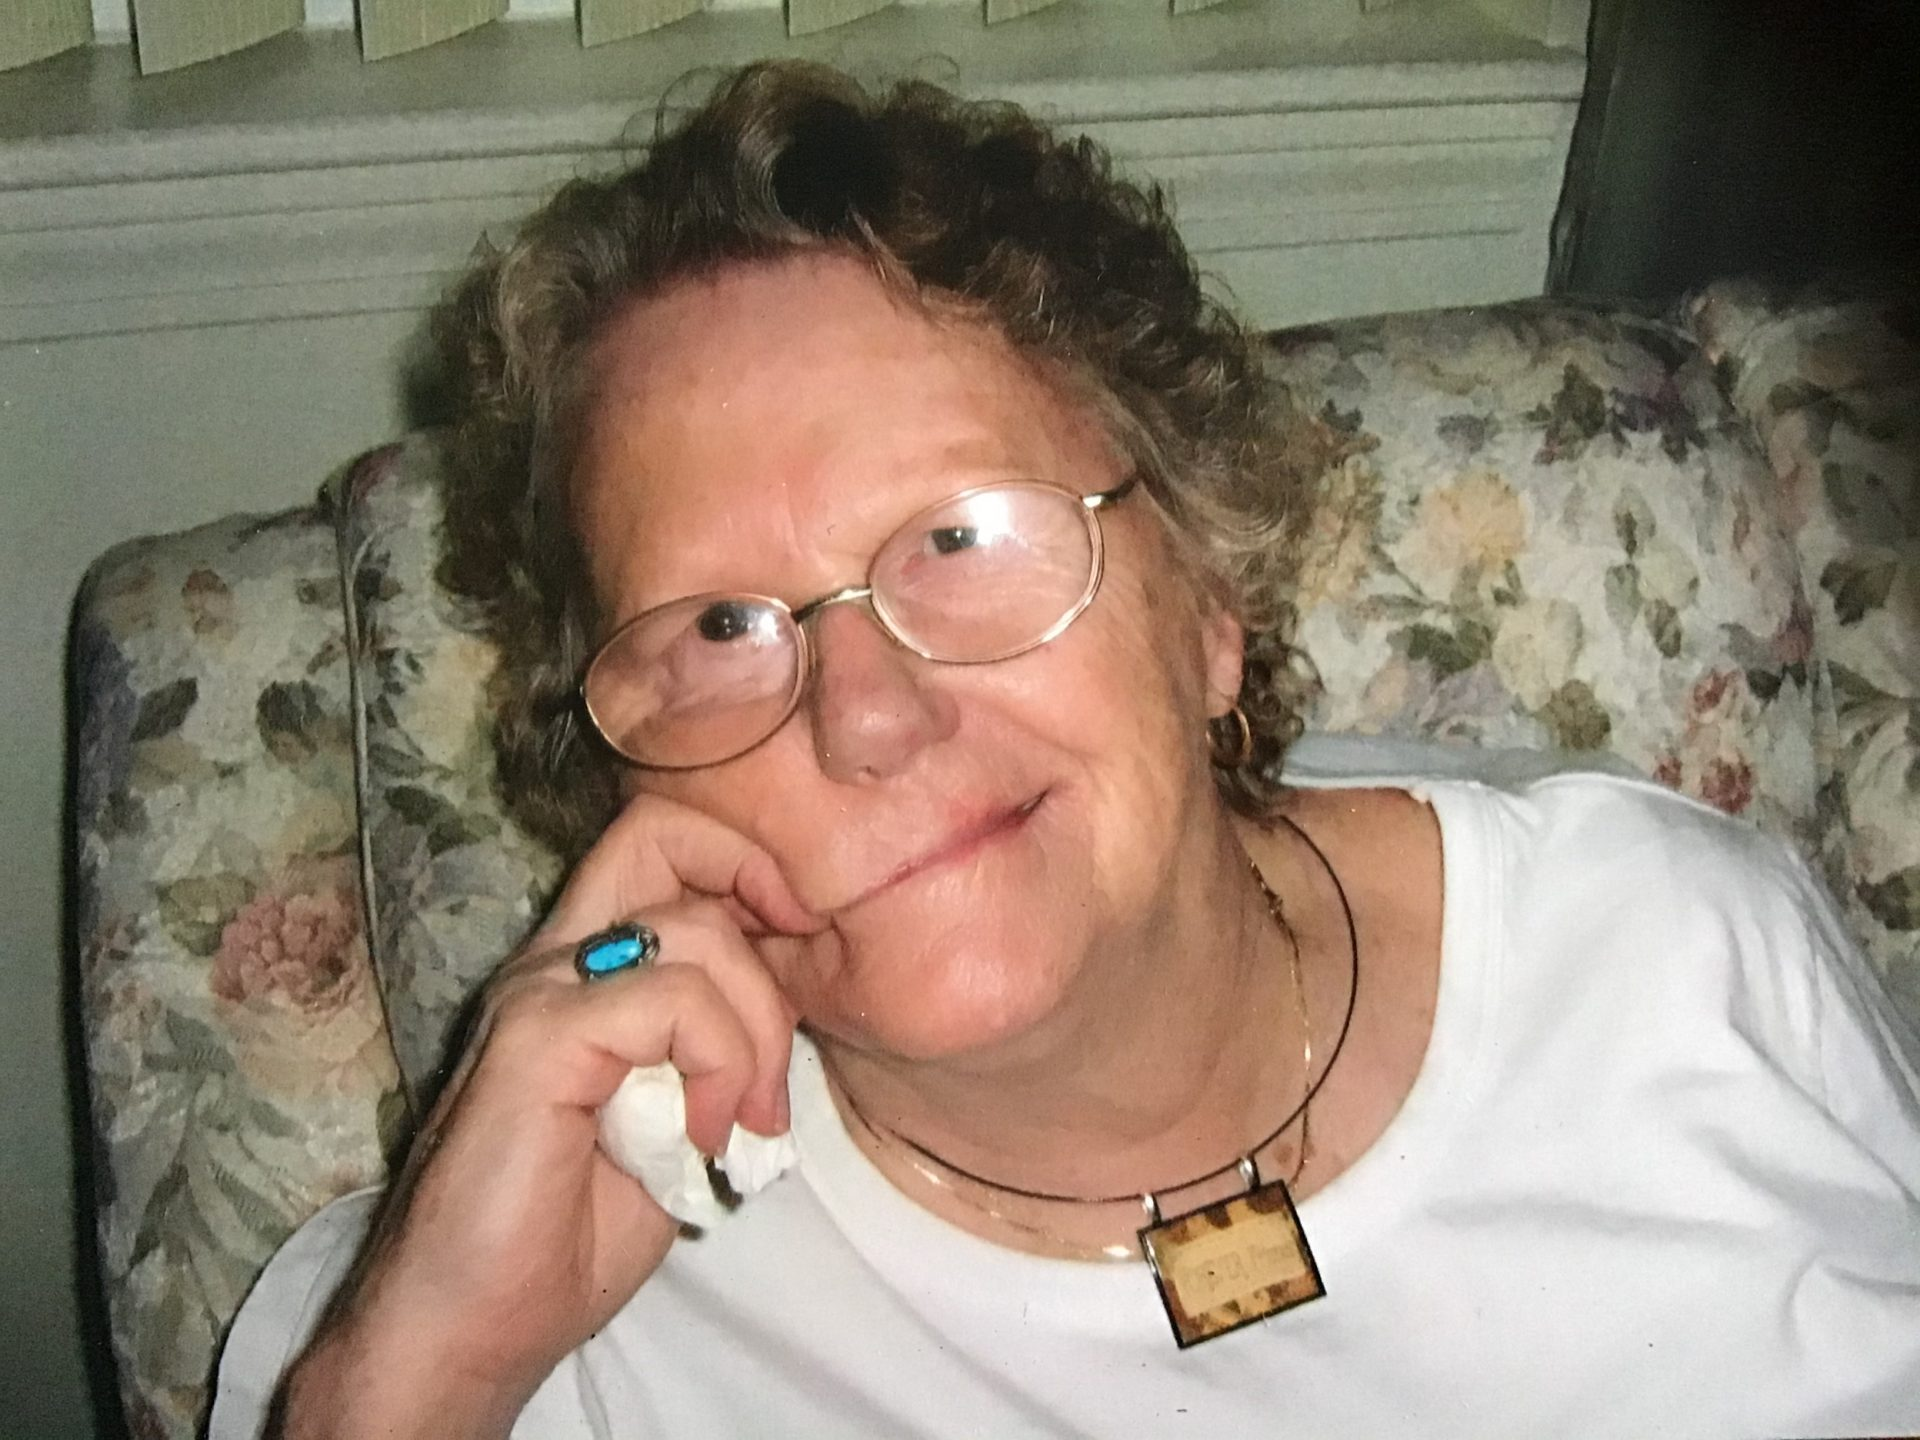 one of my favorite photos of Mom, taken on her 78th birthday.